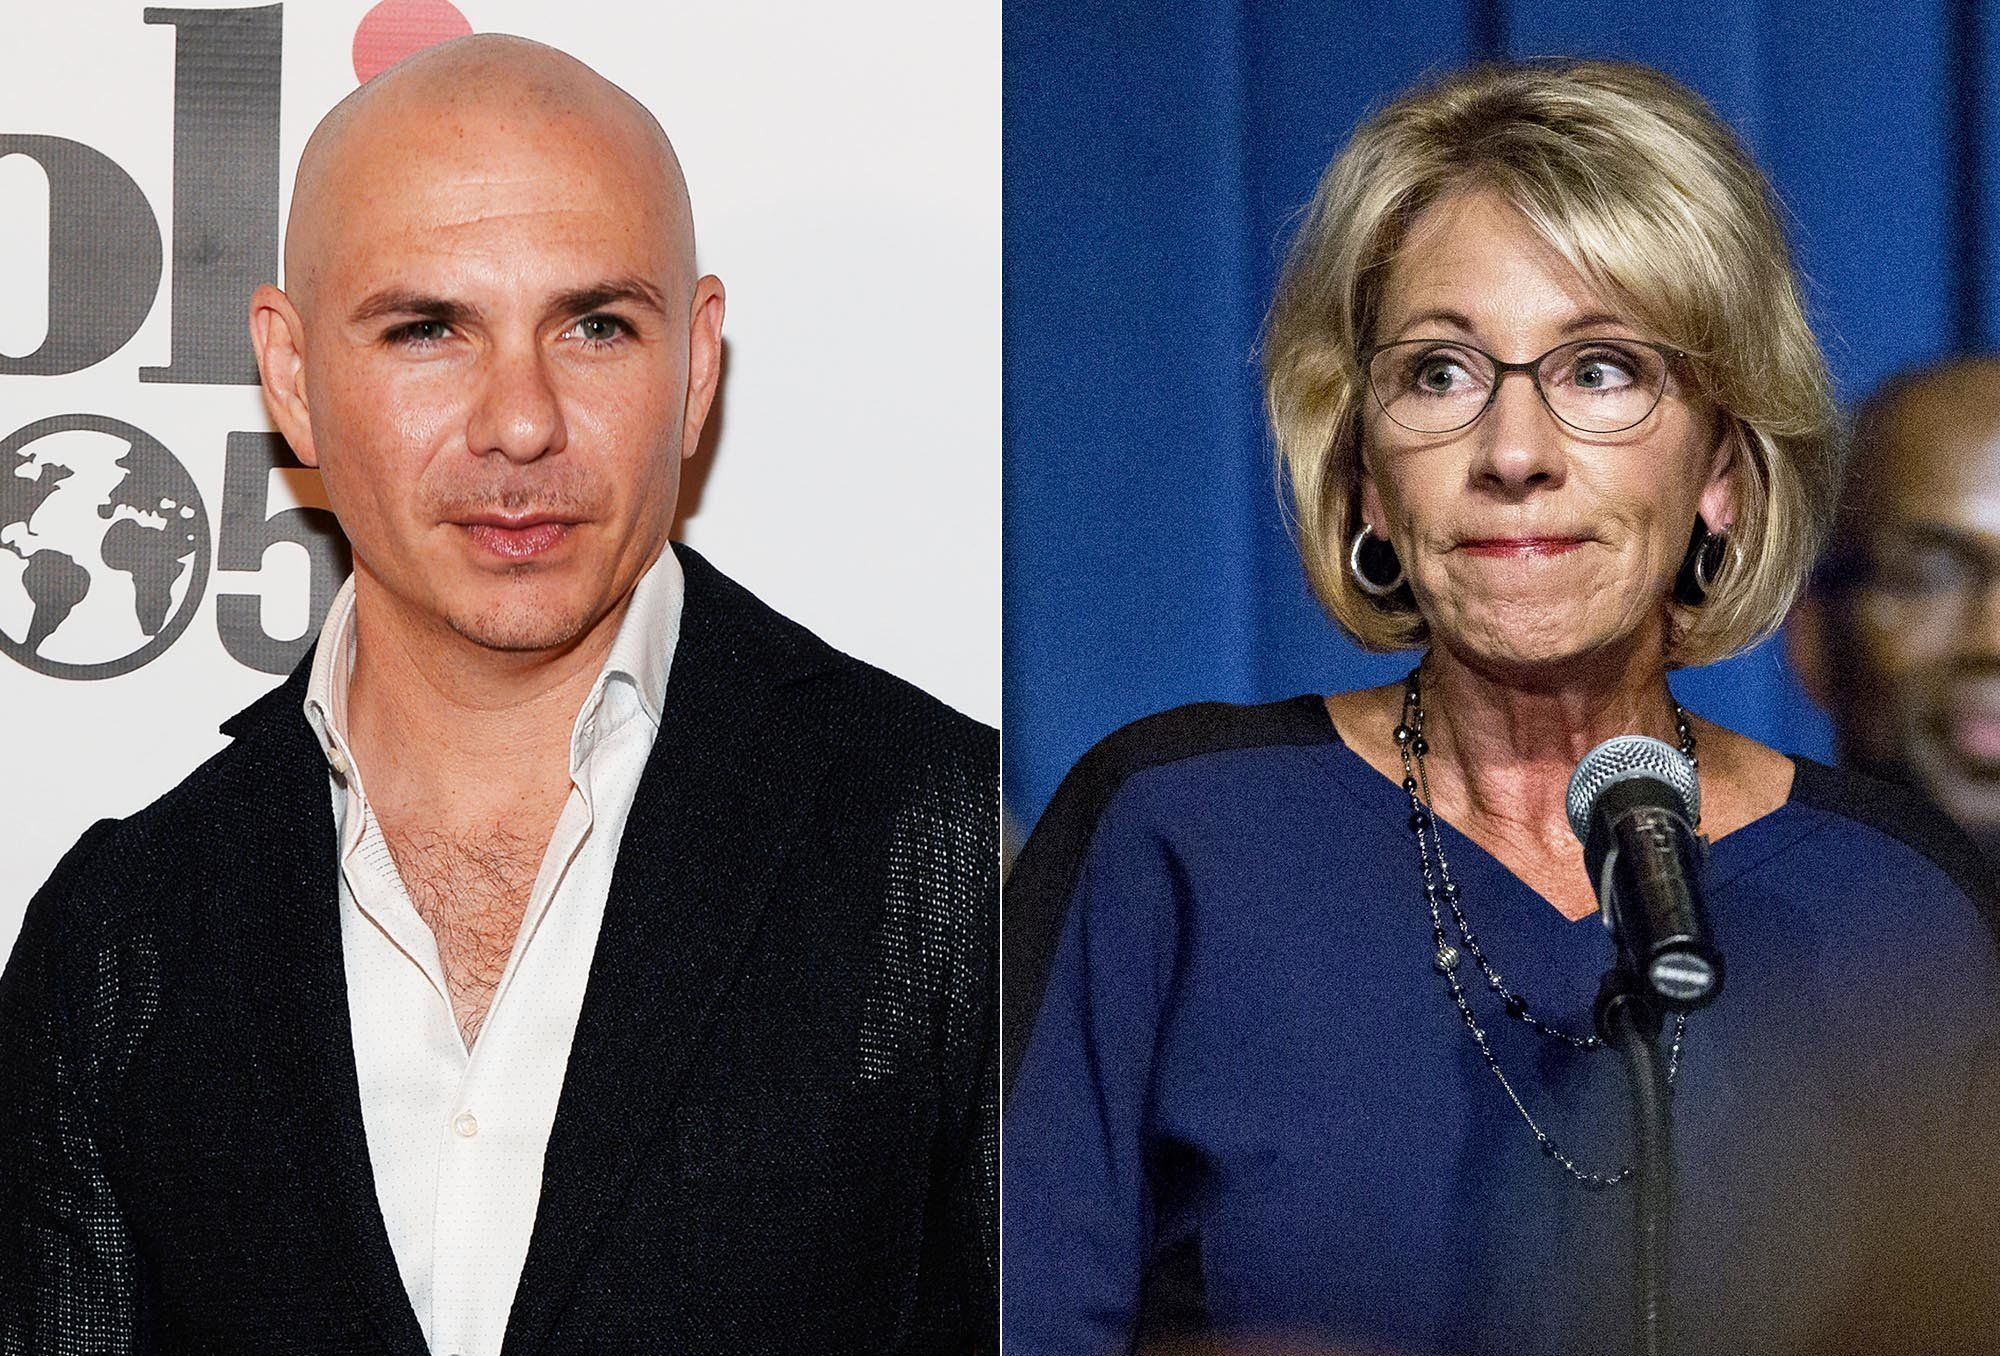 Education Secretary Betsy DeVos praised a school started by Pitbull despite its less-than-stellar record.